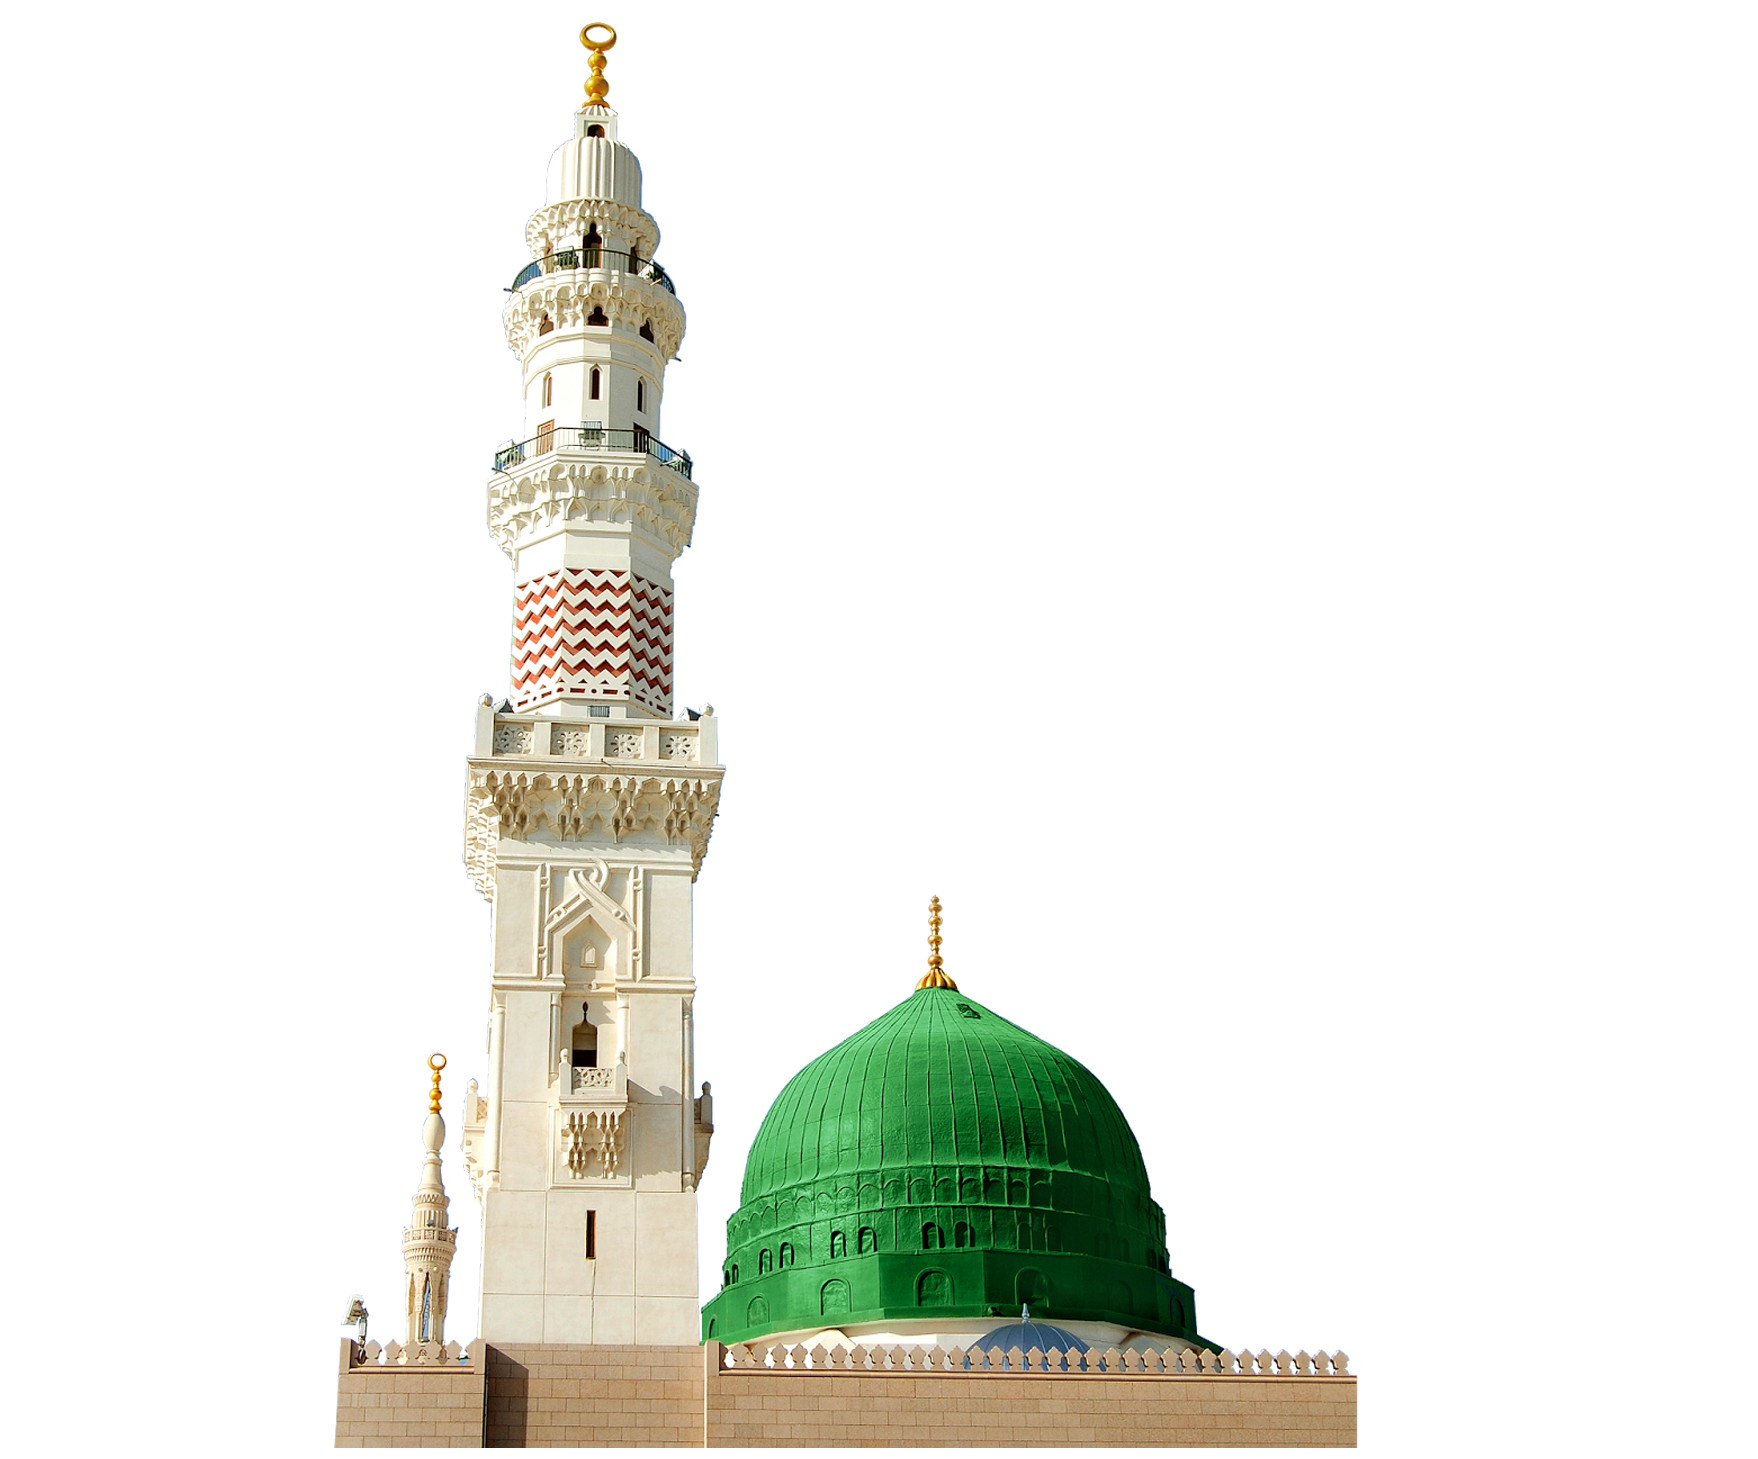 masjid nabvi png transparent background islamic psd #10392